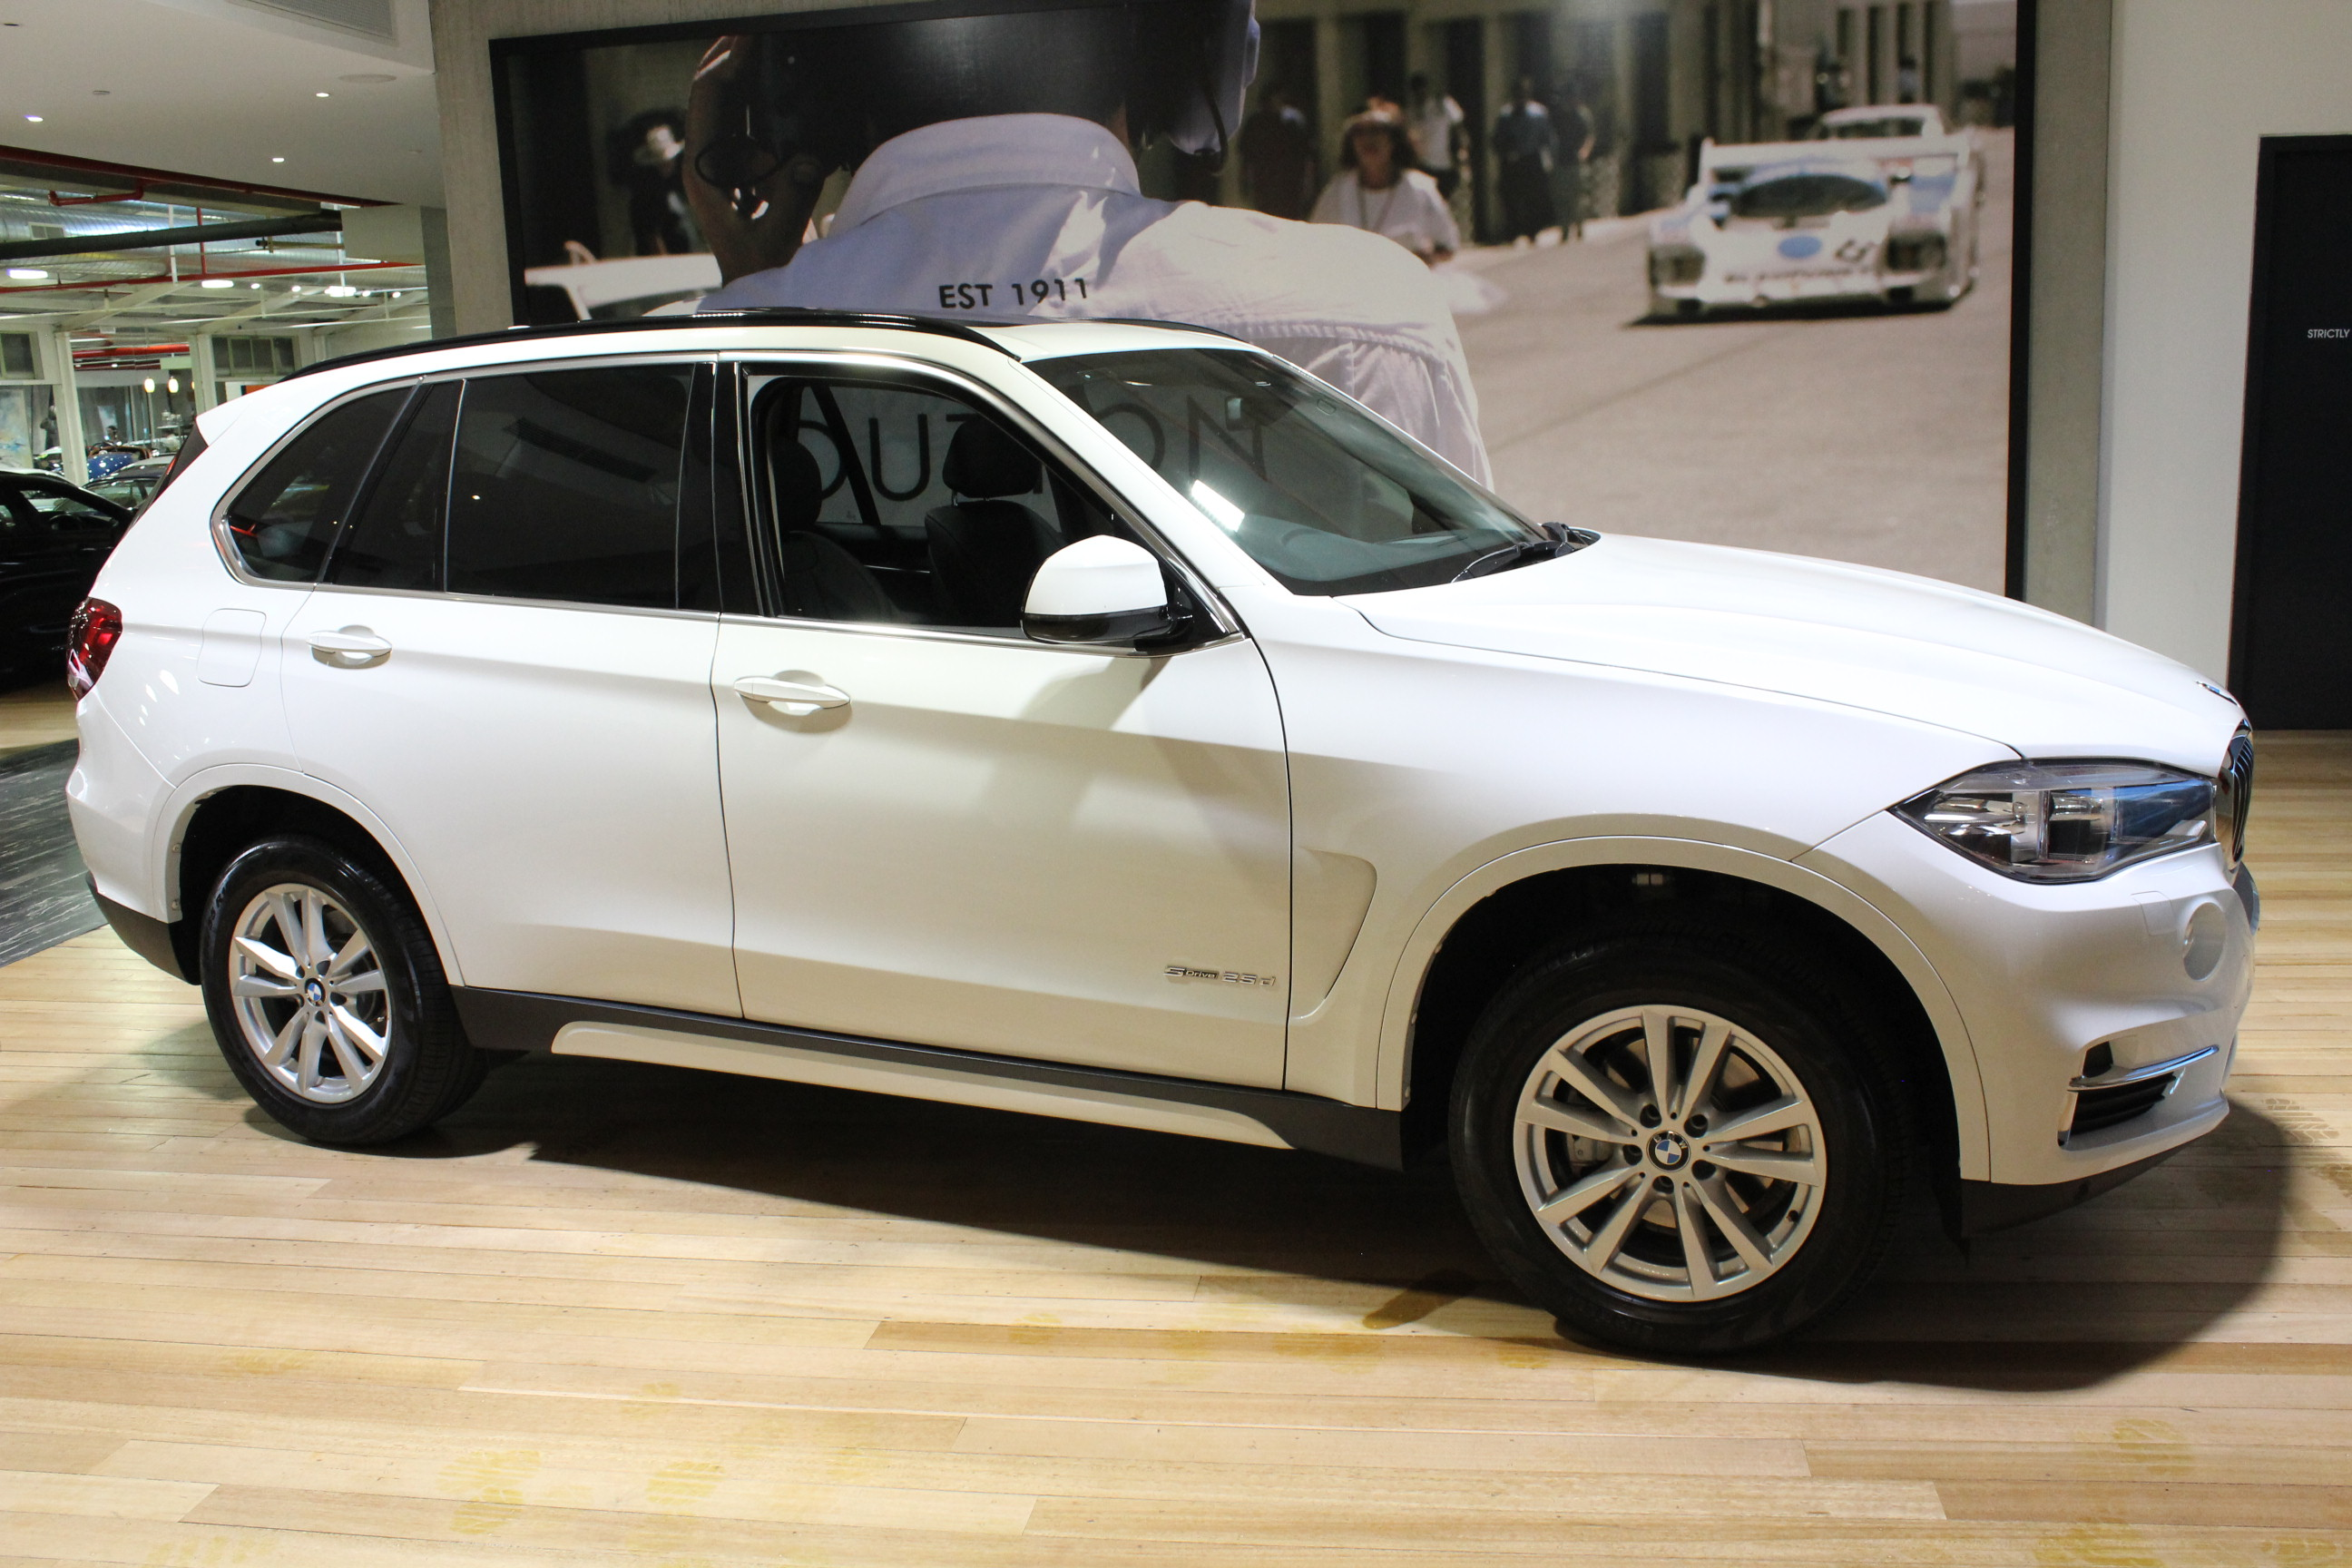 2014 BMW X5 F15 sDrive25d Wagon 5dr Auto 8sp 2.0DTT (Apr) - for sale in Australia